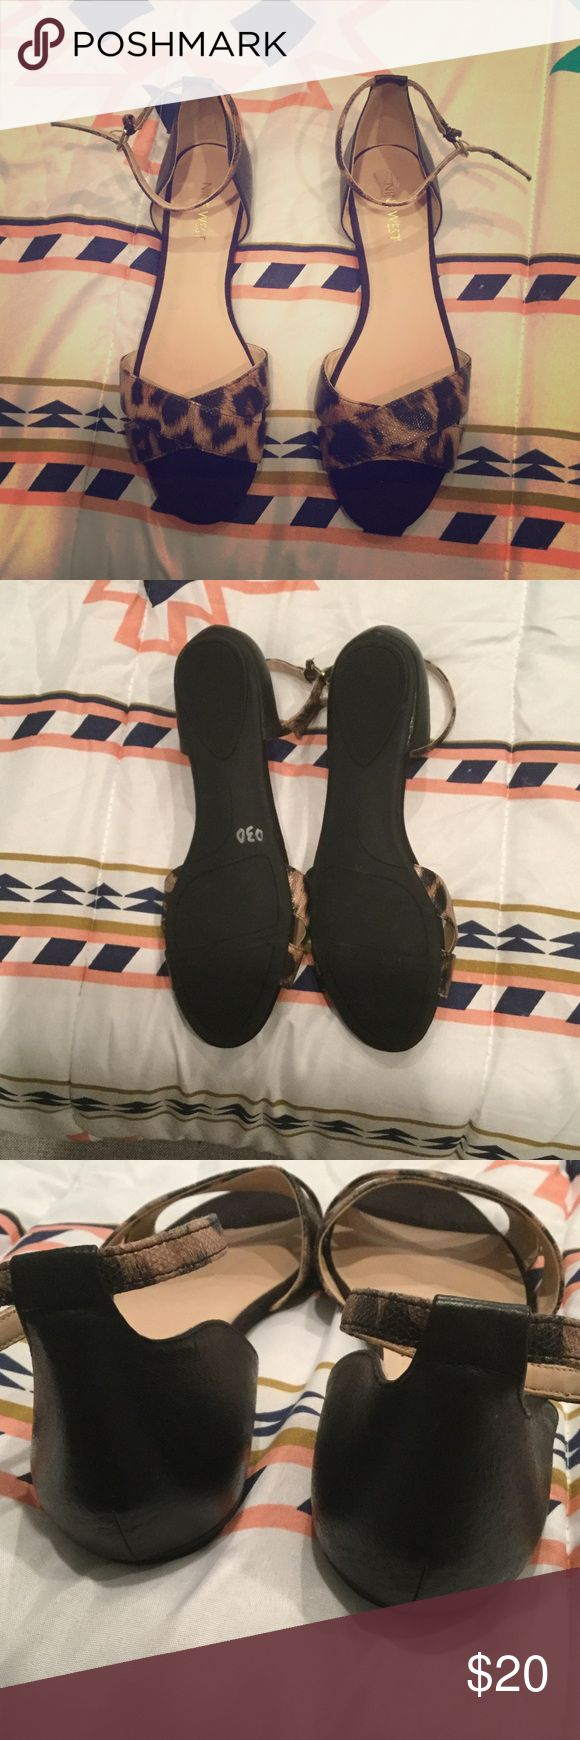 Nine West open toe flats with ankle straps! Never worn only tried on Nine West open toe flats/sandals with ankle straps Nine West Shoes Sandals